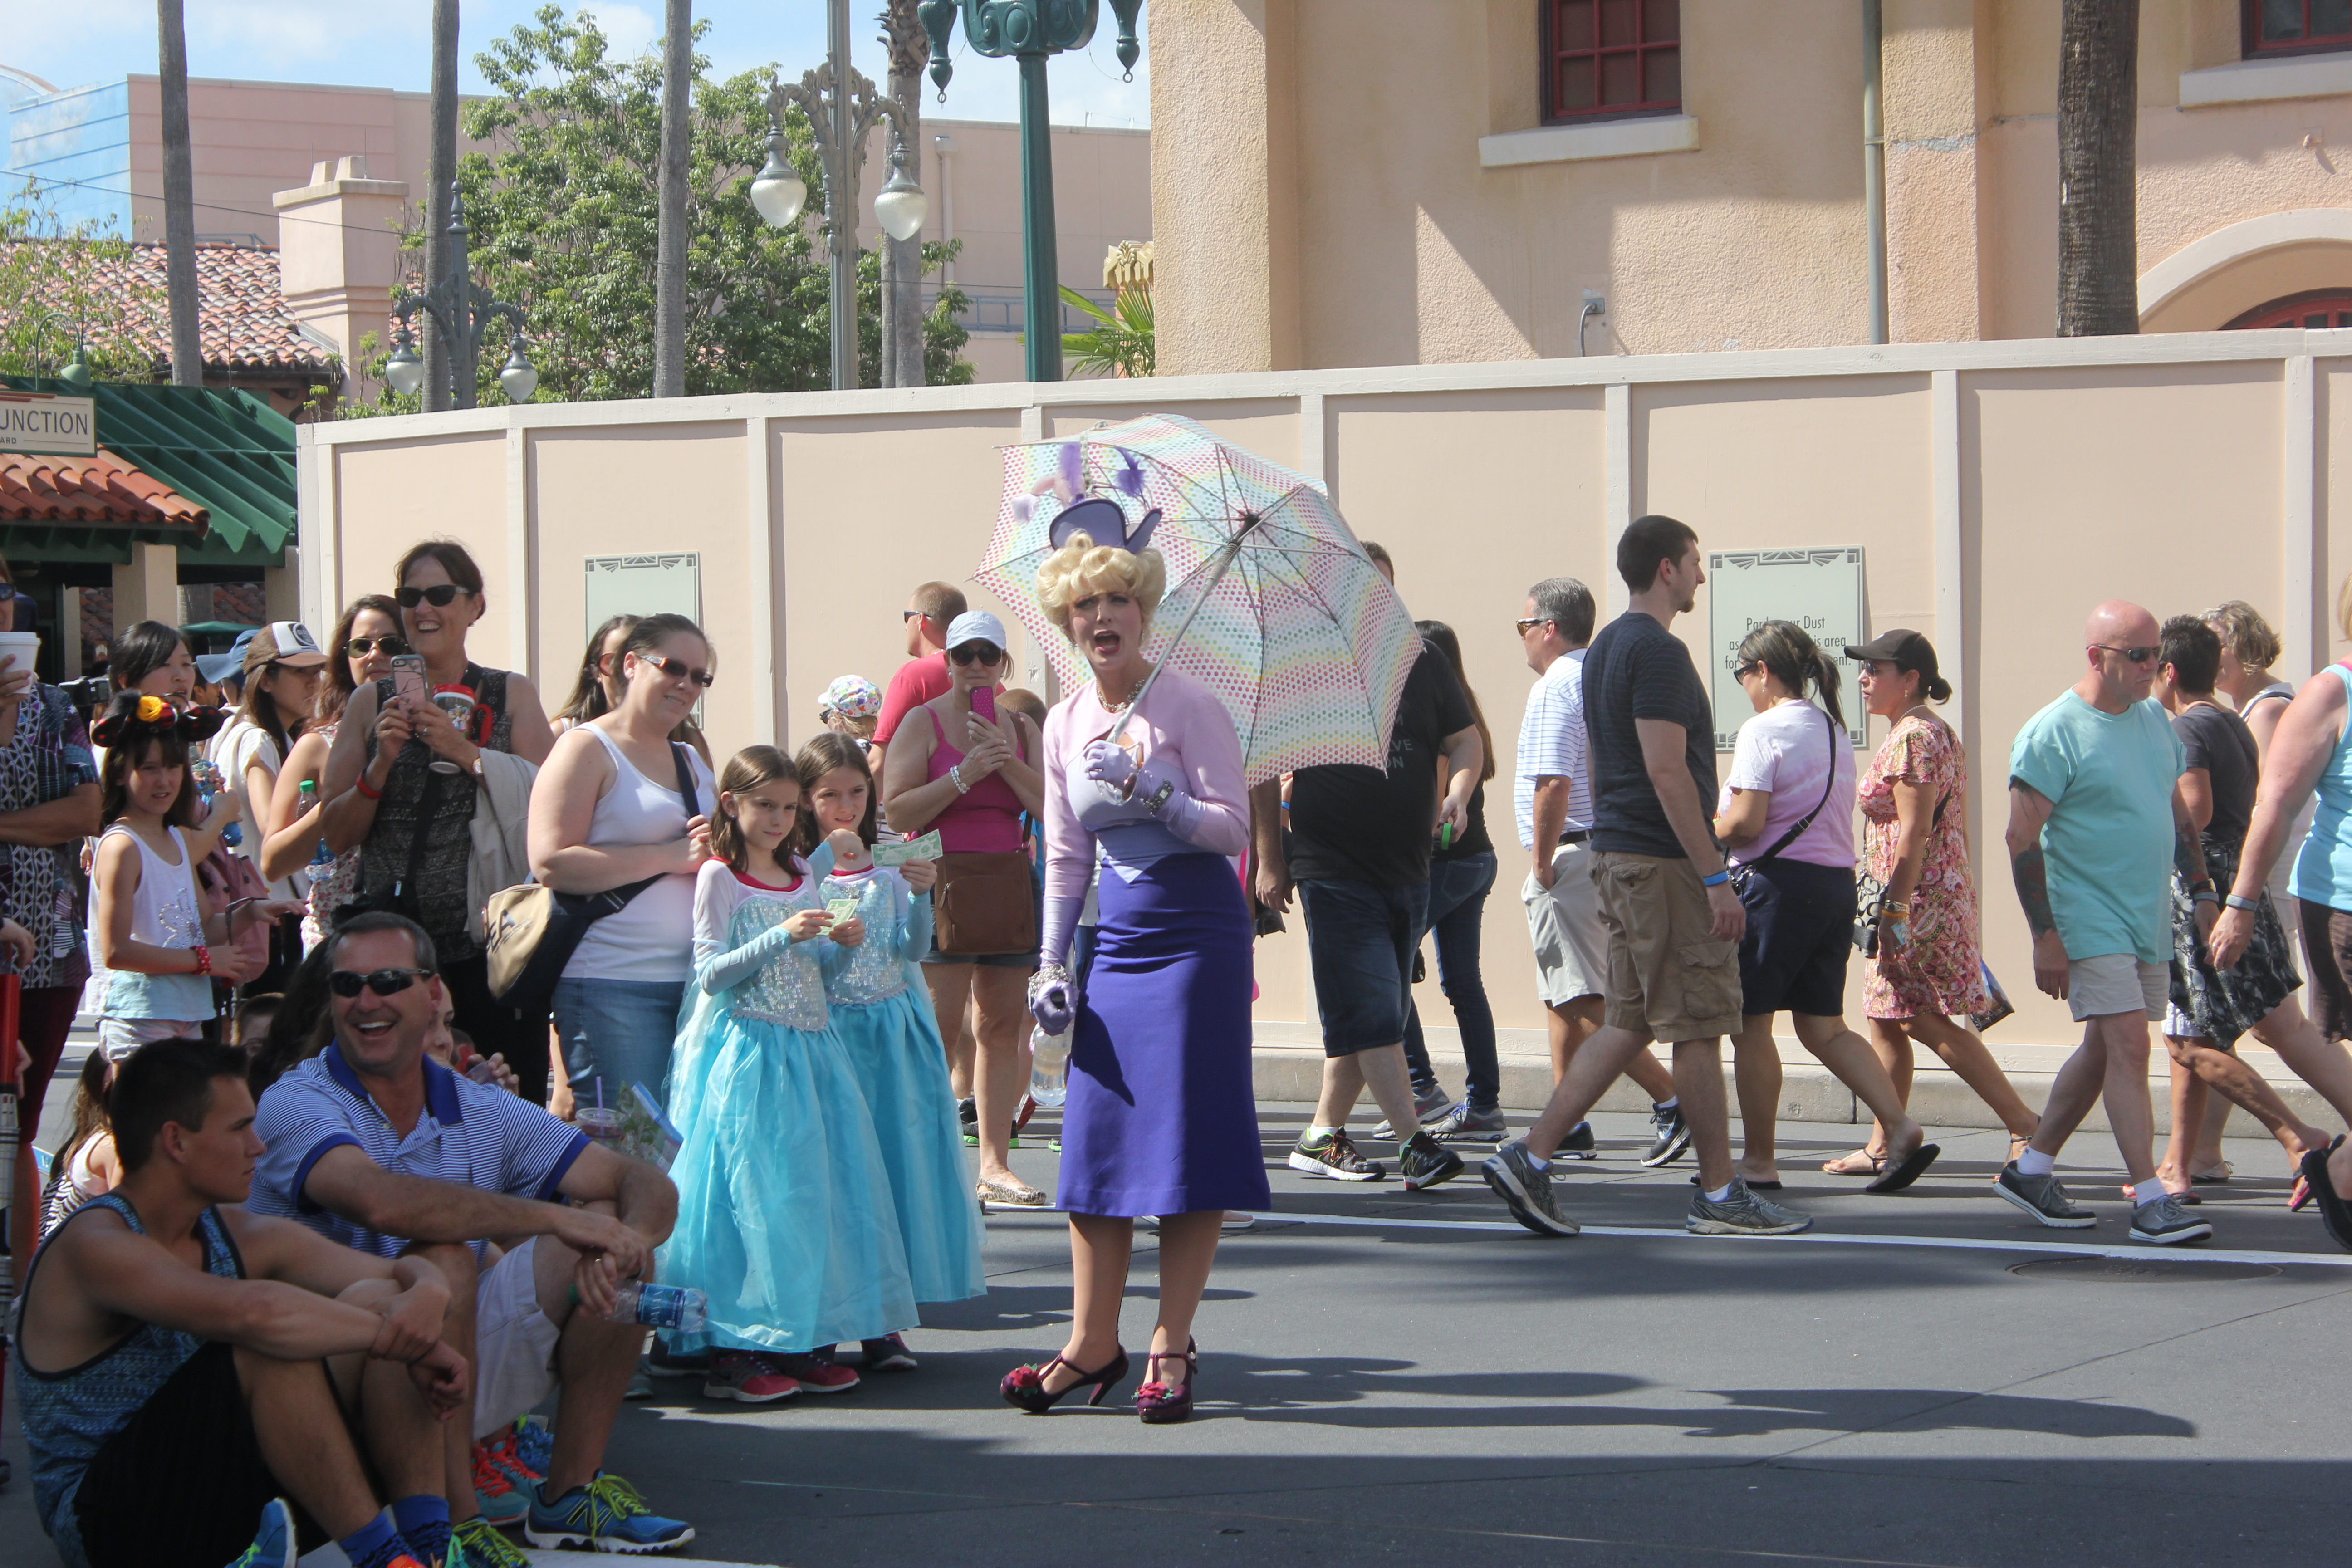 How To Have Fun at Disney's Hollywood Studios Without Riding Coasters